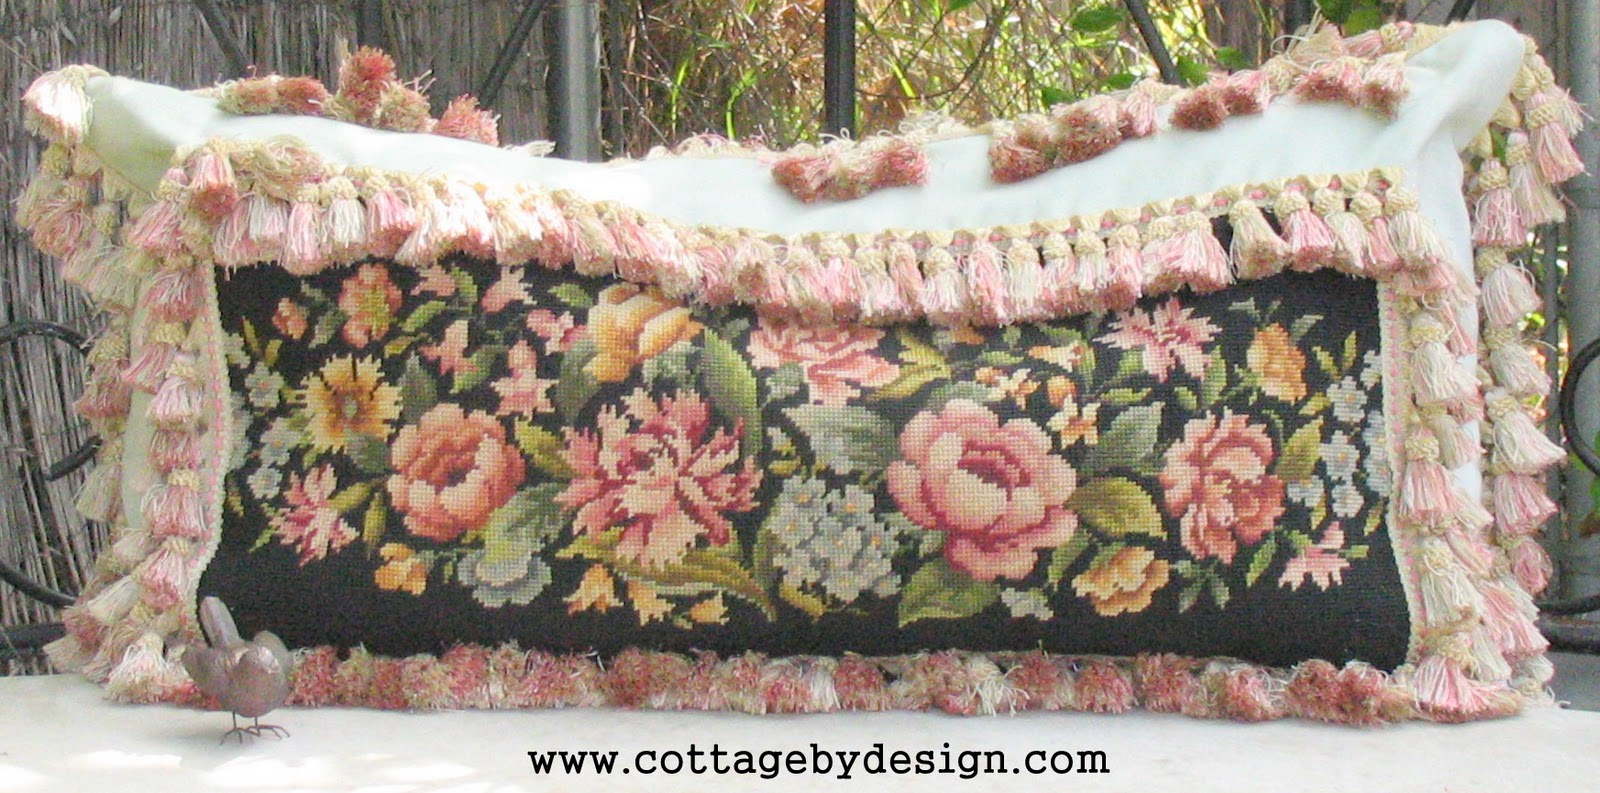 Cottage by Design with Trish Banner Vintage Needlepoint Pillows